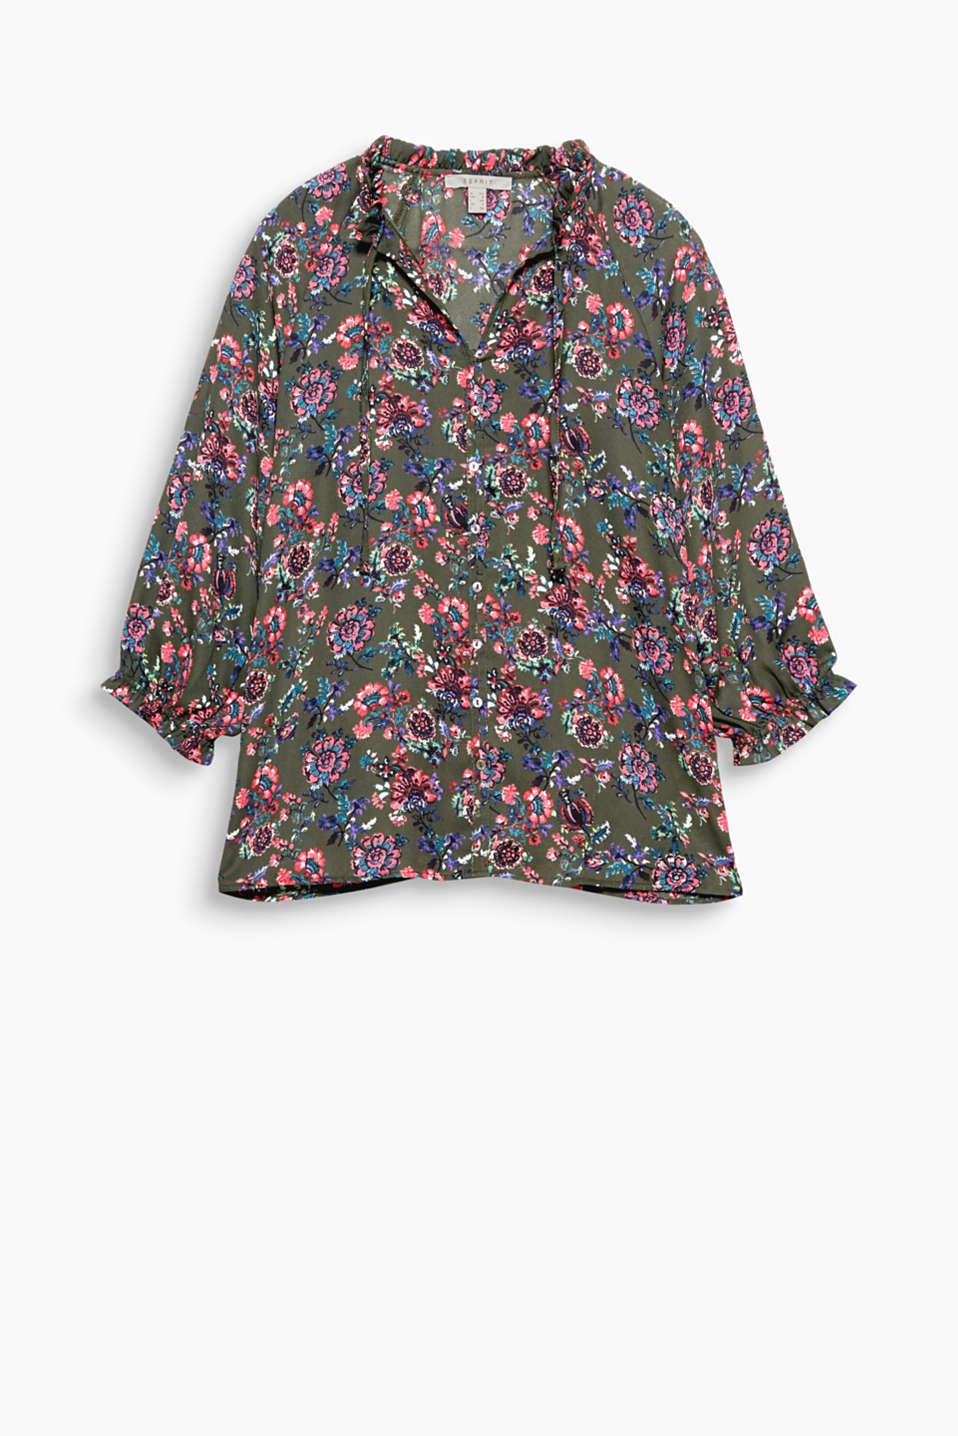 With a colourful floral print: Frilled blouse in slightly sheer, flowing material